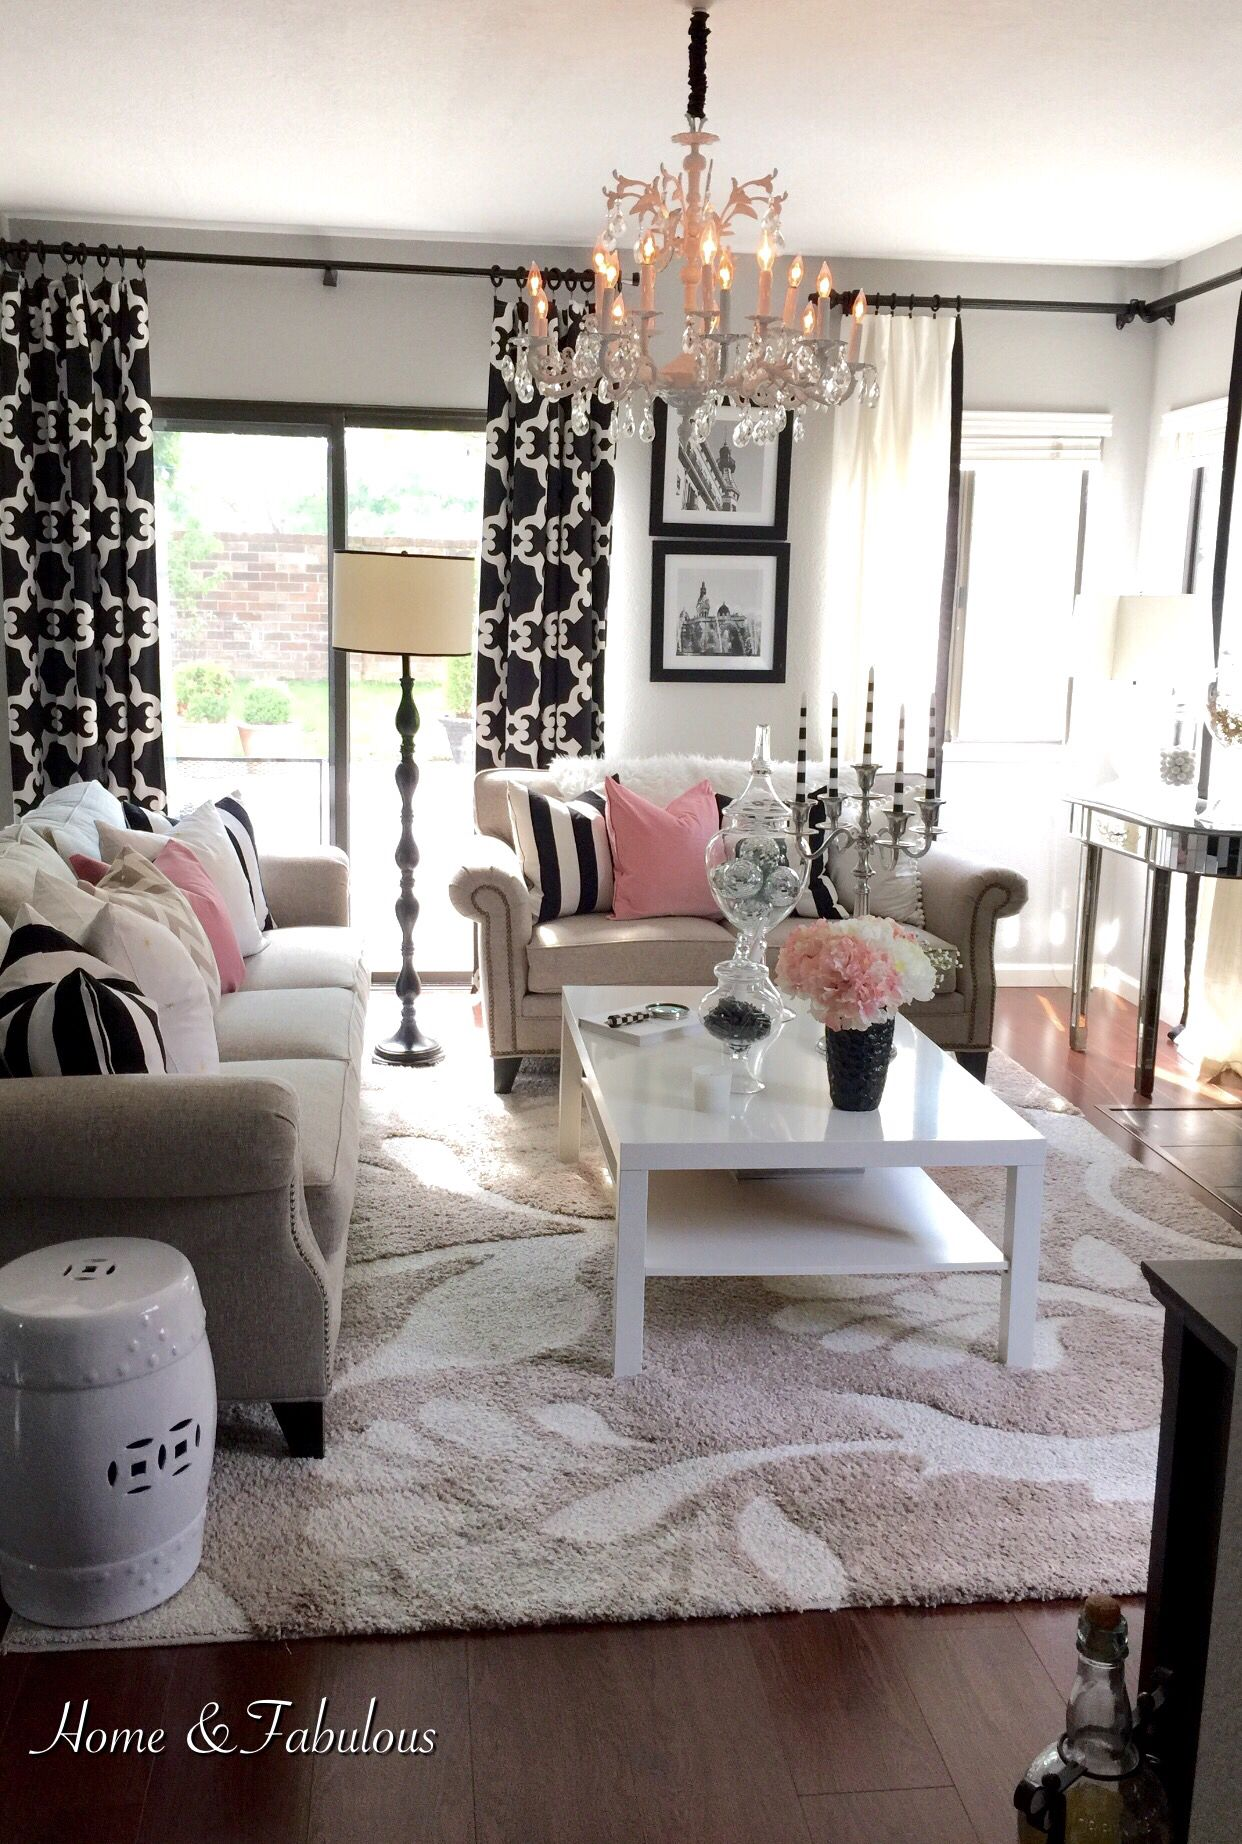 rugs for living room in home goods modern black and white furniture a neutral rug like this from homegoods allows you to incorporate any color want as the seasons change homegoodshappy sponsored pin